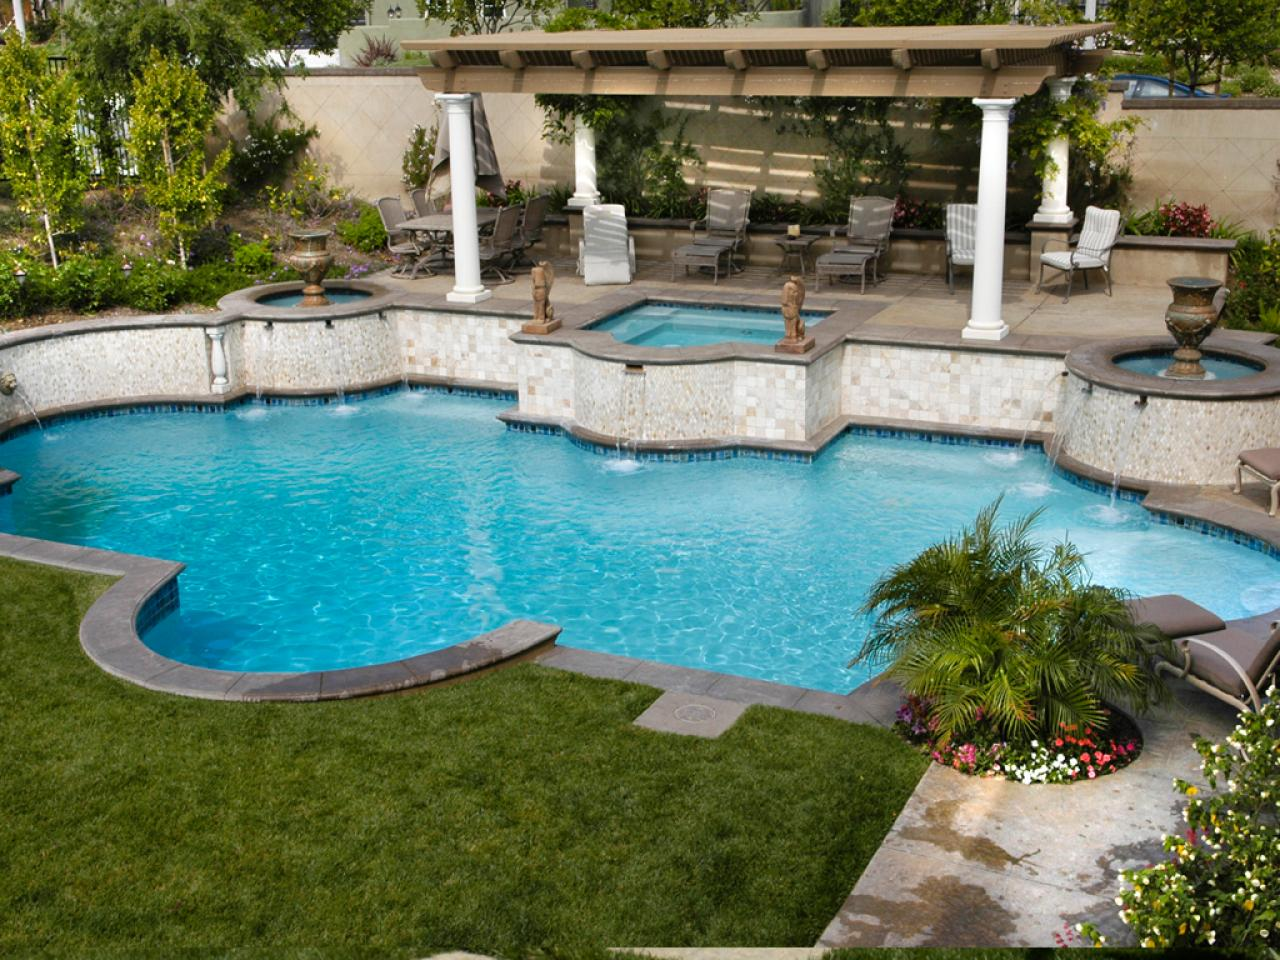 Mediterranean inspired swimming pools outdoor spaces for Poolside ideas